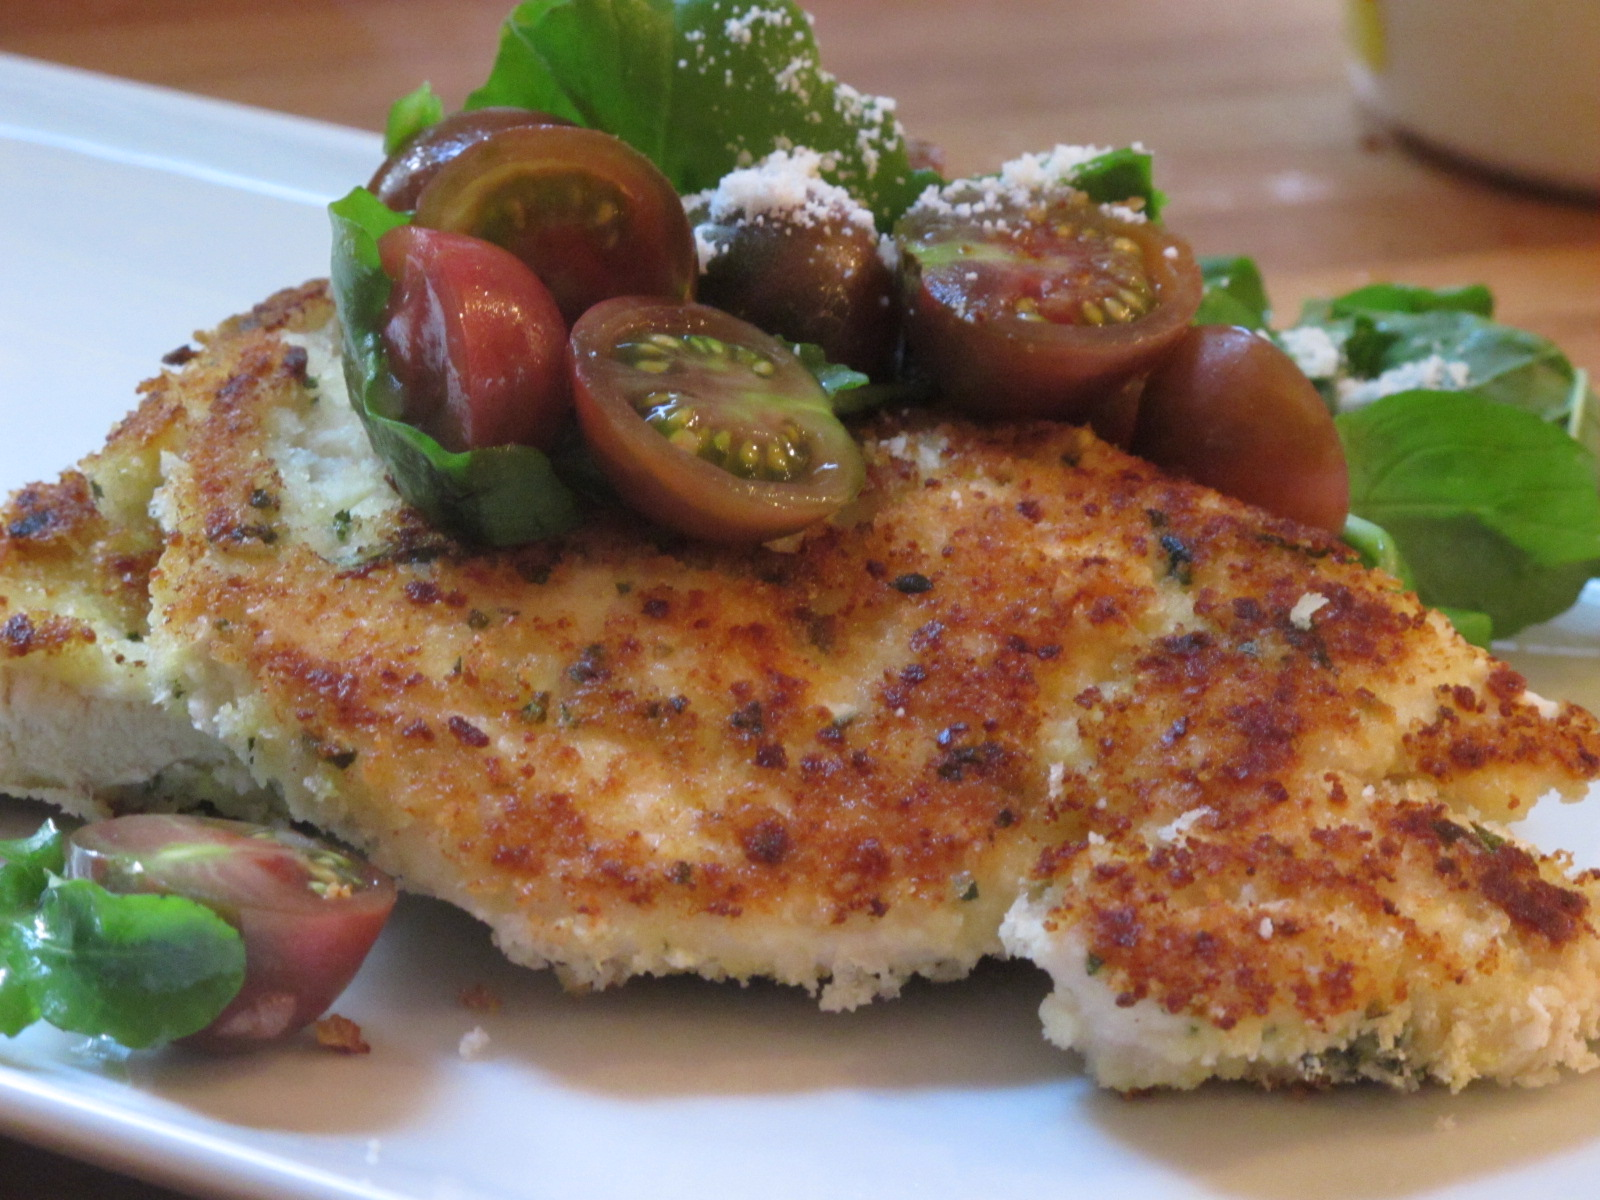 CCKS AFTER HOURS: Chicken Milanese with Tomato Salad